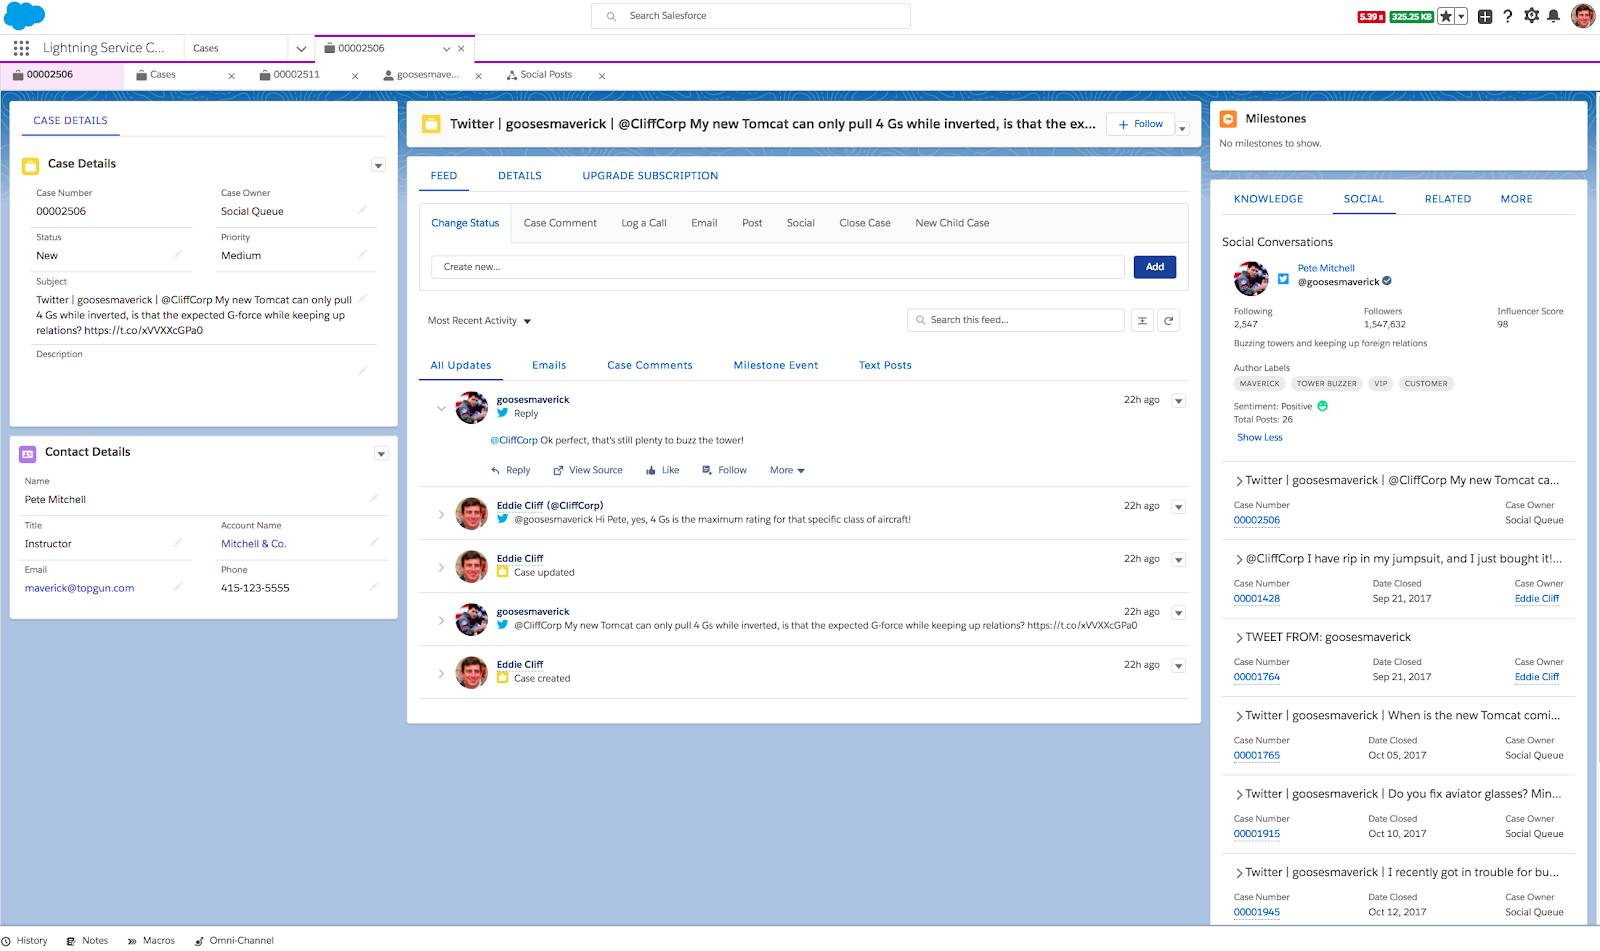 A case in Salesforce that shows a customer's social interactions and social persona.